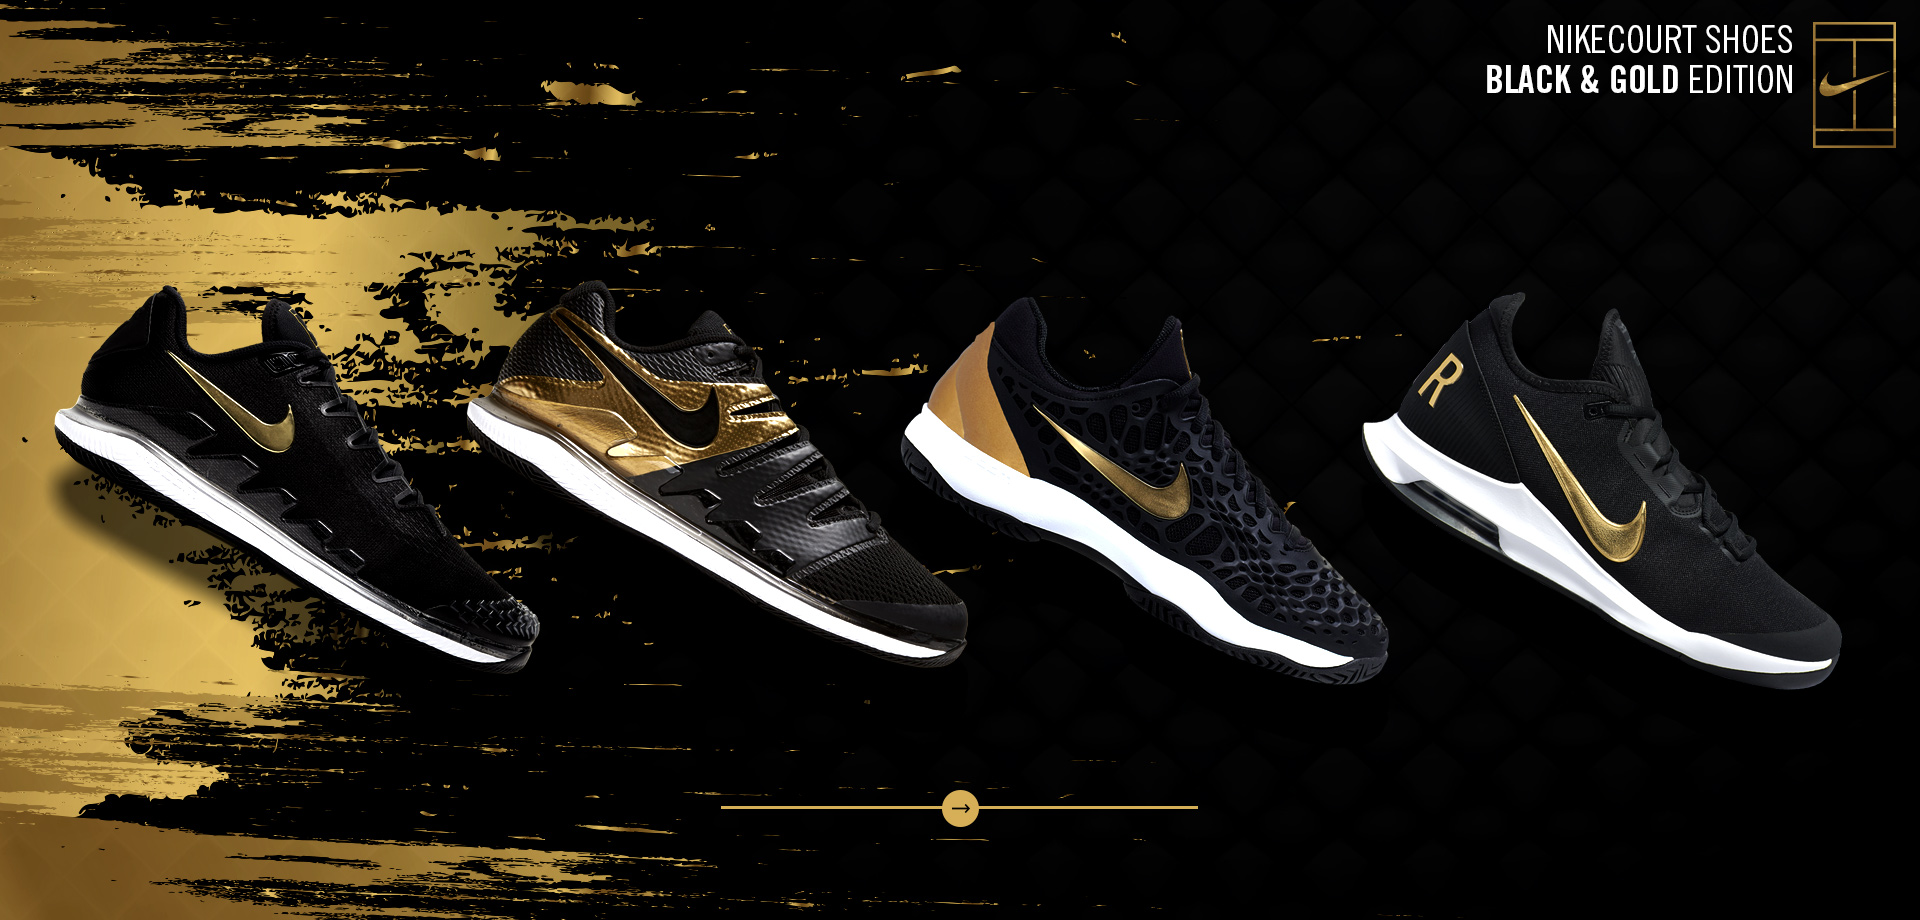 Nikecourt Shoes Limited Edition